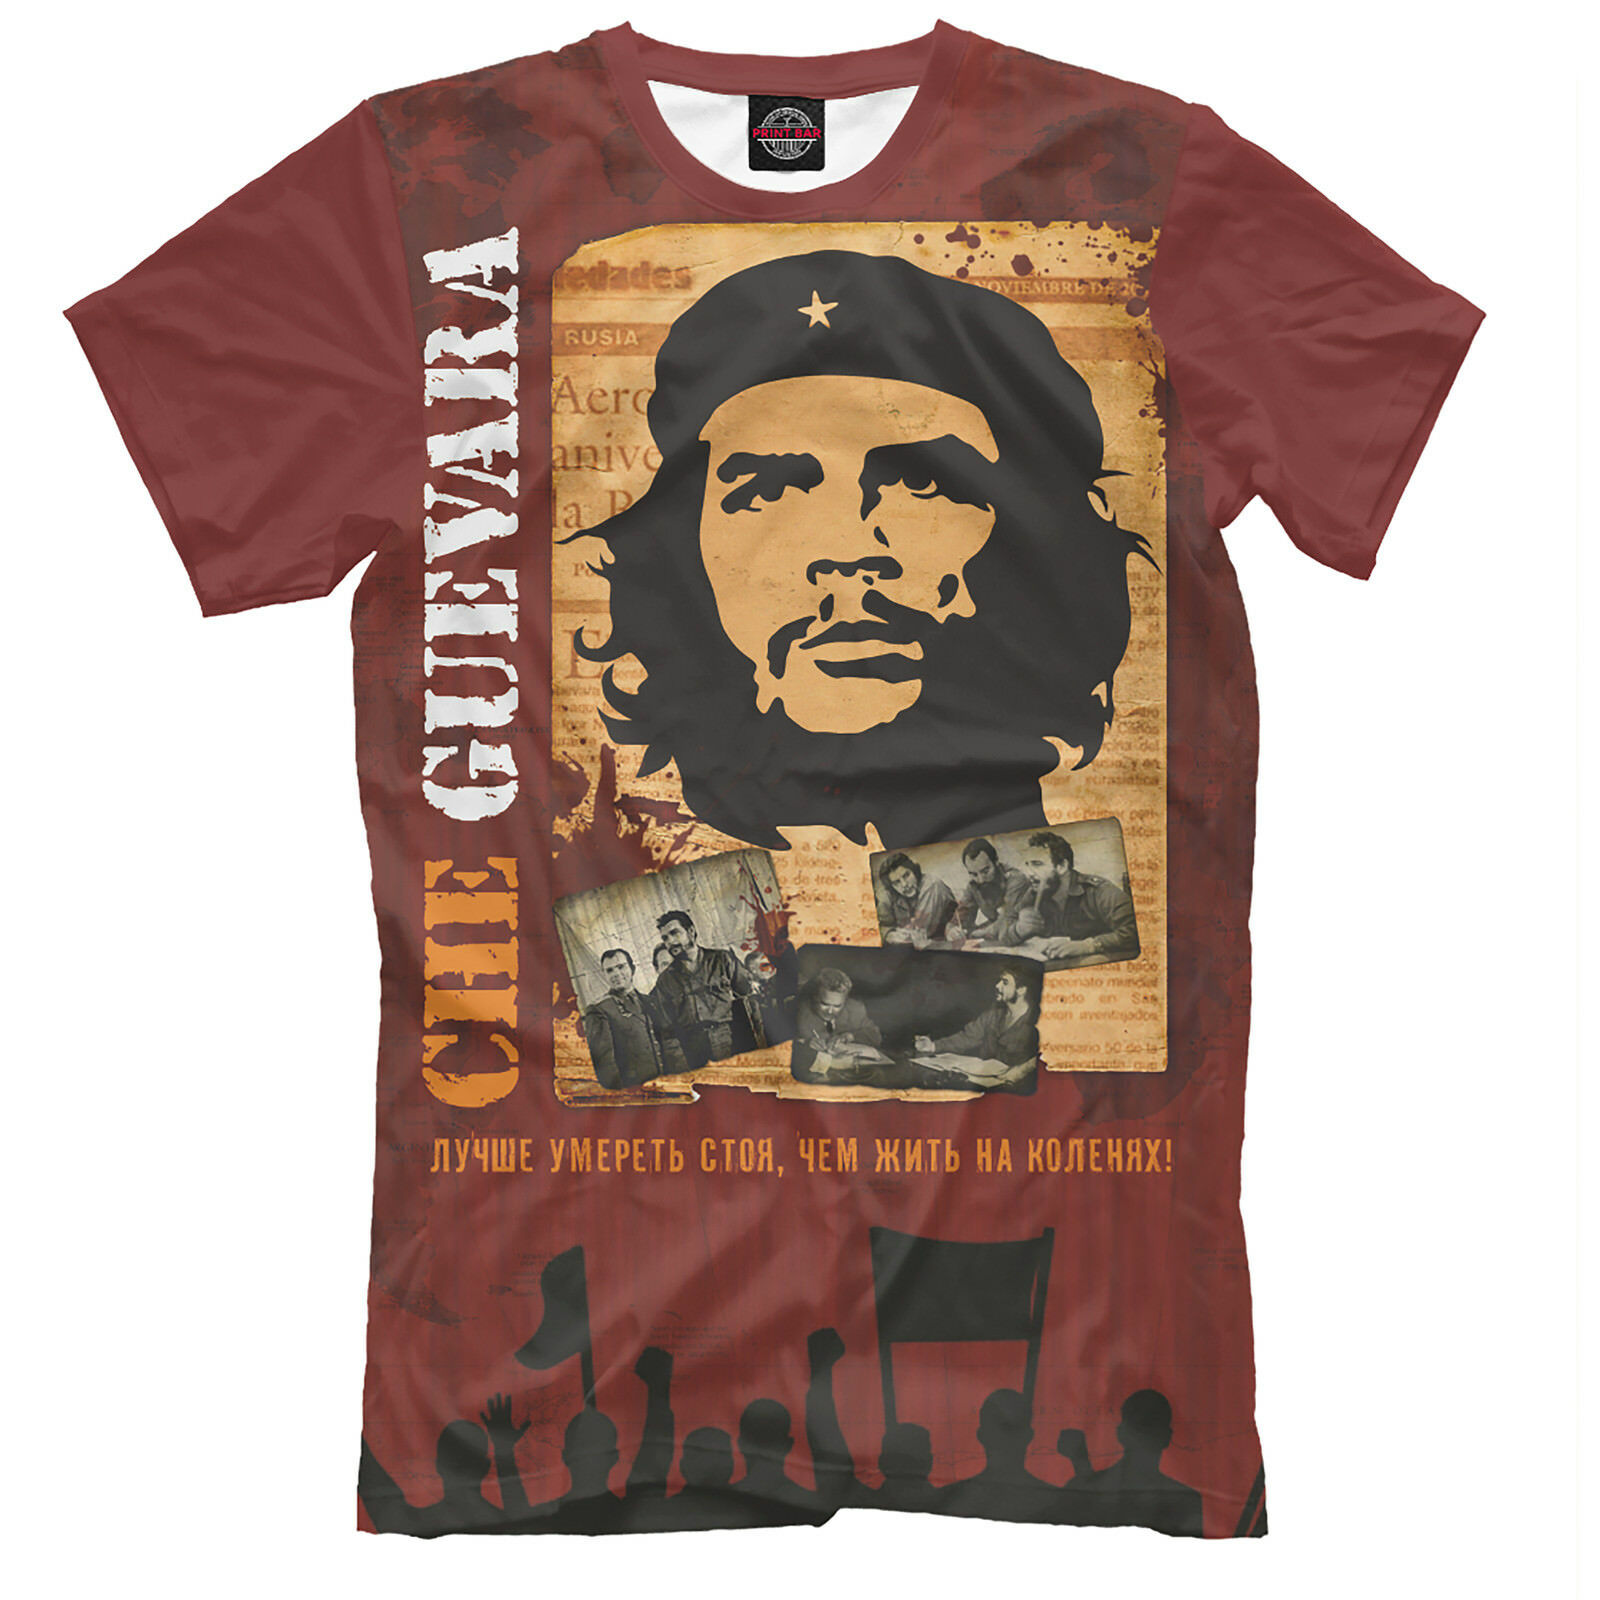 Men's T-shirt - Che Guevara - Historical personality - High quality - ts1188